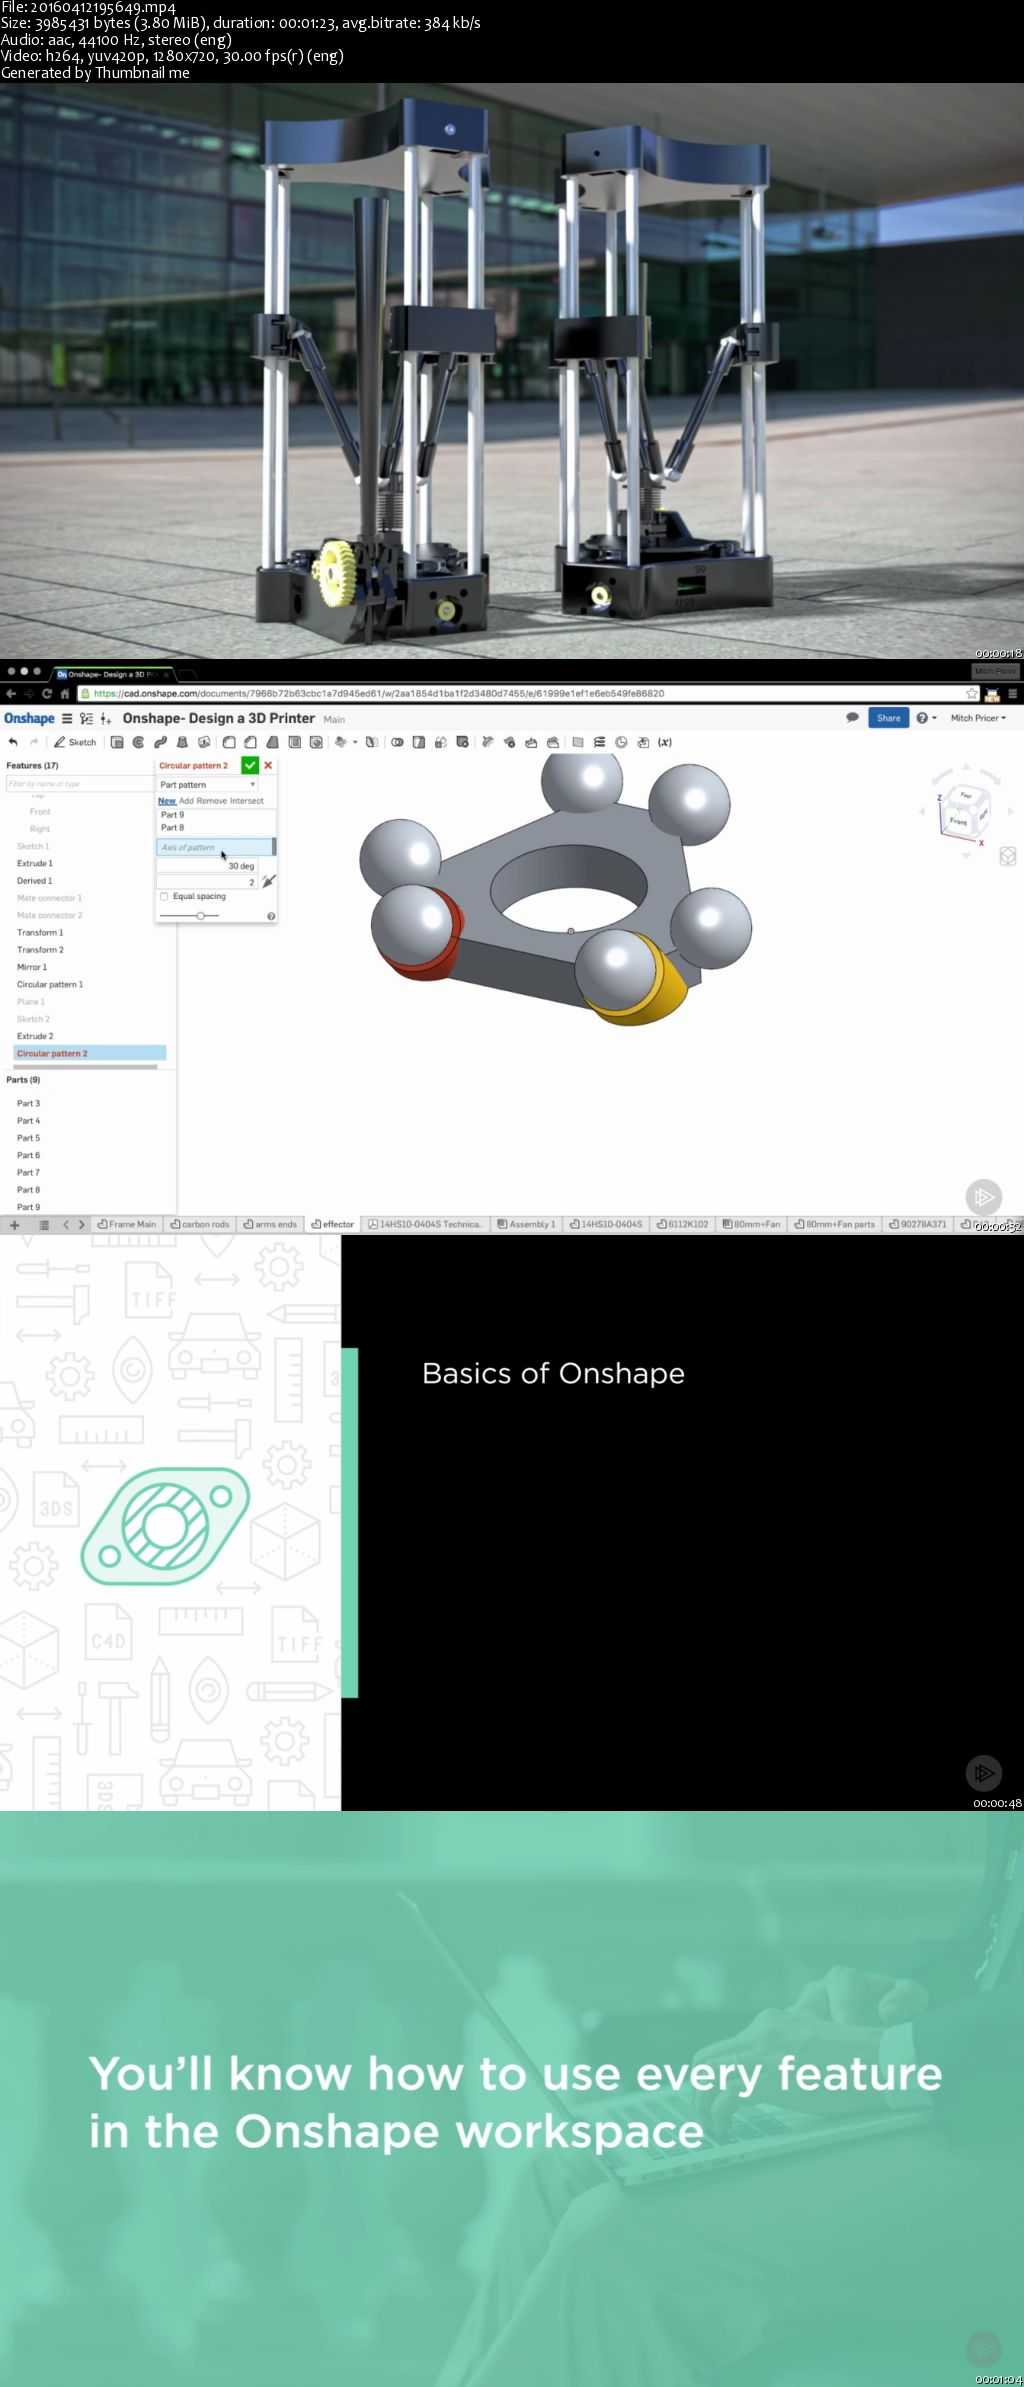 Onshape - Design a 3D Printer